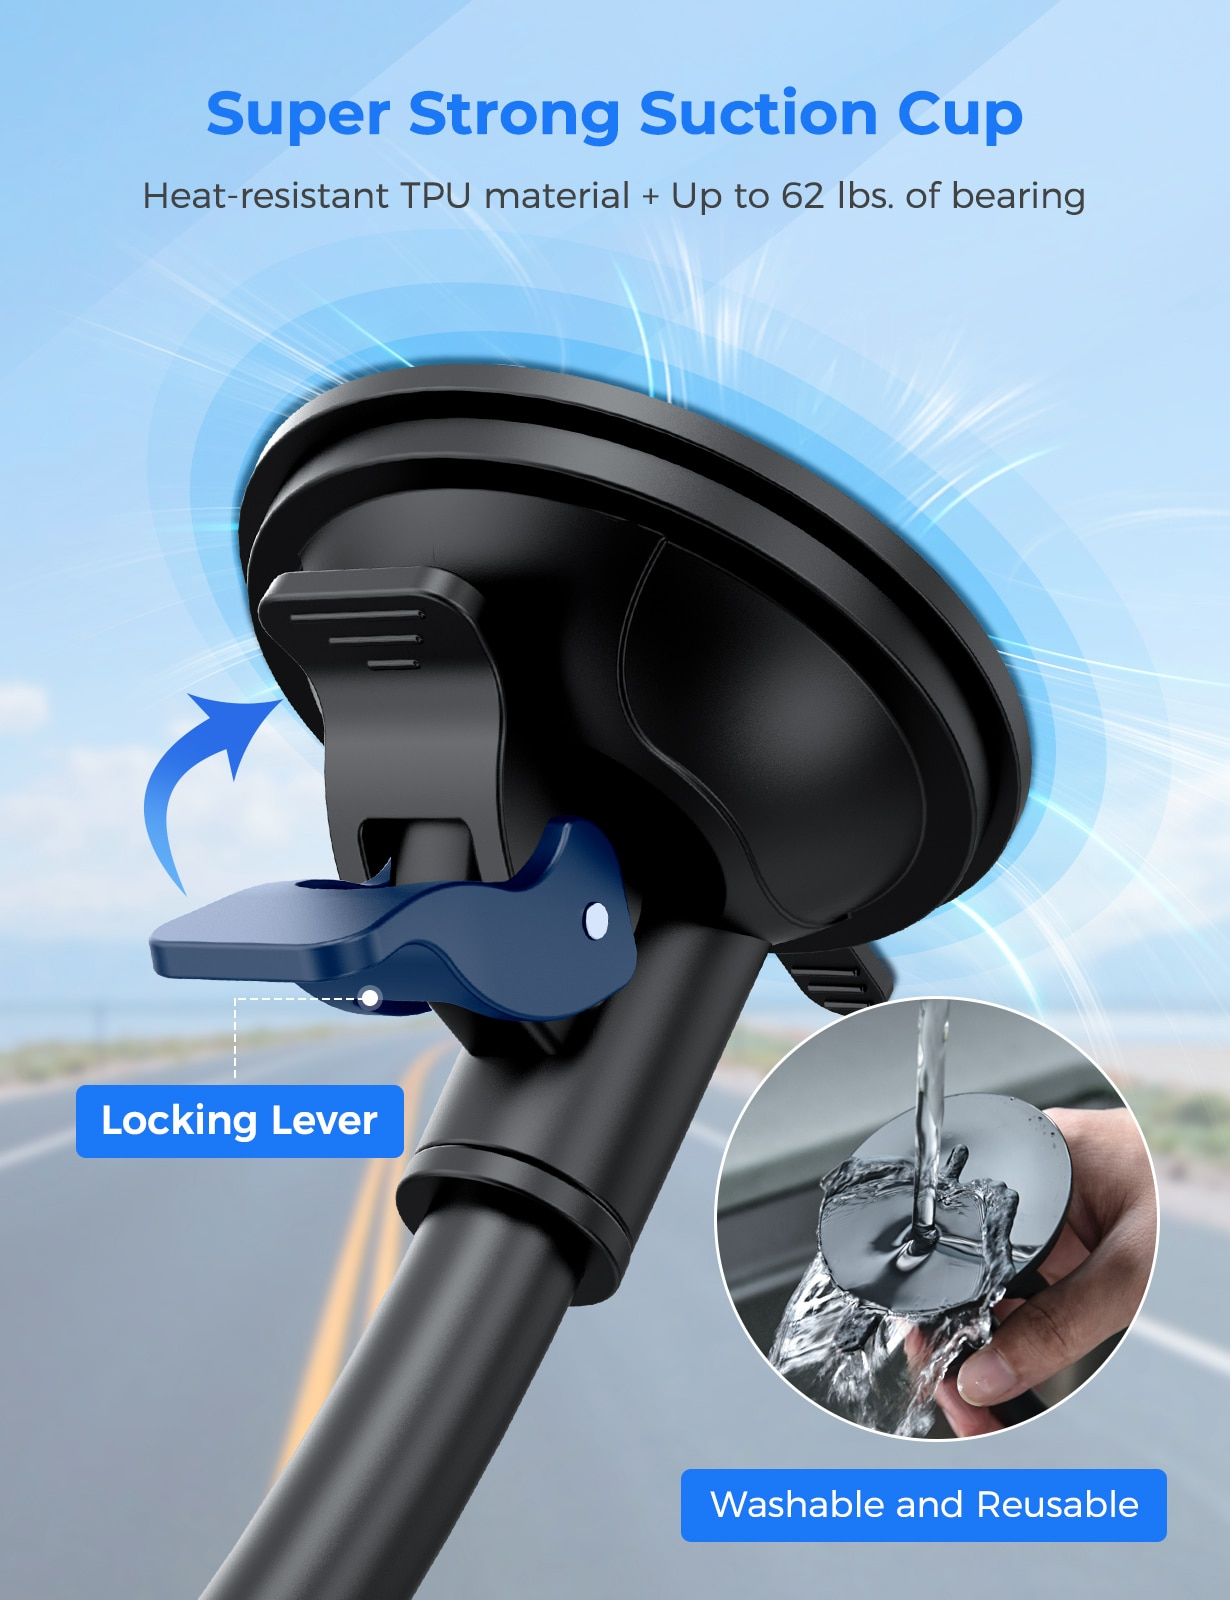 Hd01c57d751454e689afee53e33e5bd18d - MPOW CA159 Upgraded Long Gooseneck Phone Holder for Car Windshield Car Phone Mount for iPhone SE 11 Pro Galaxy Note and More